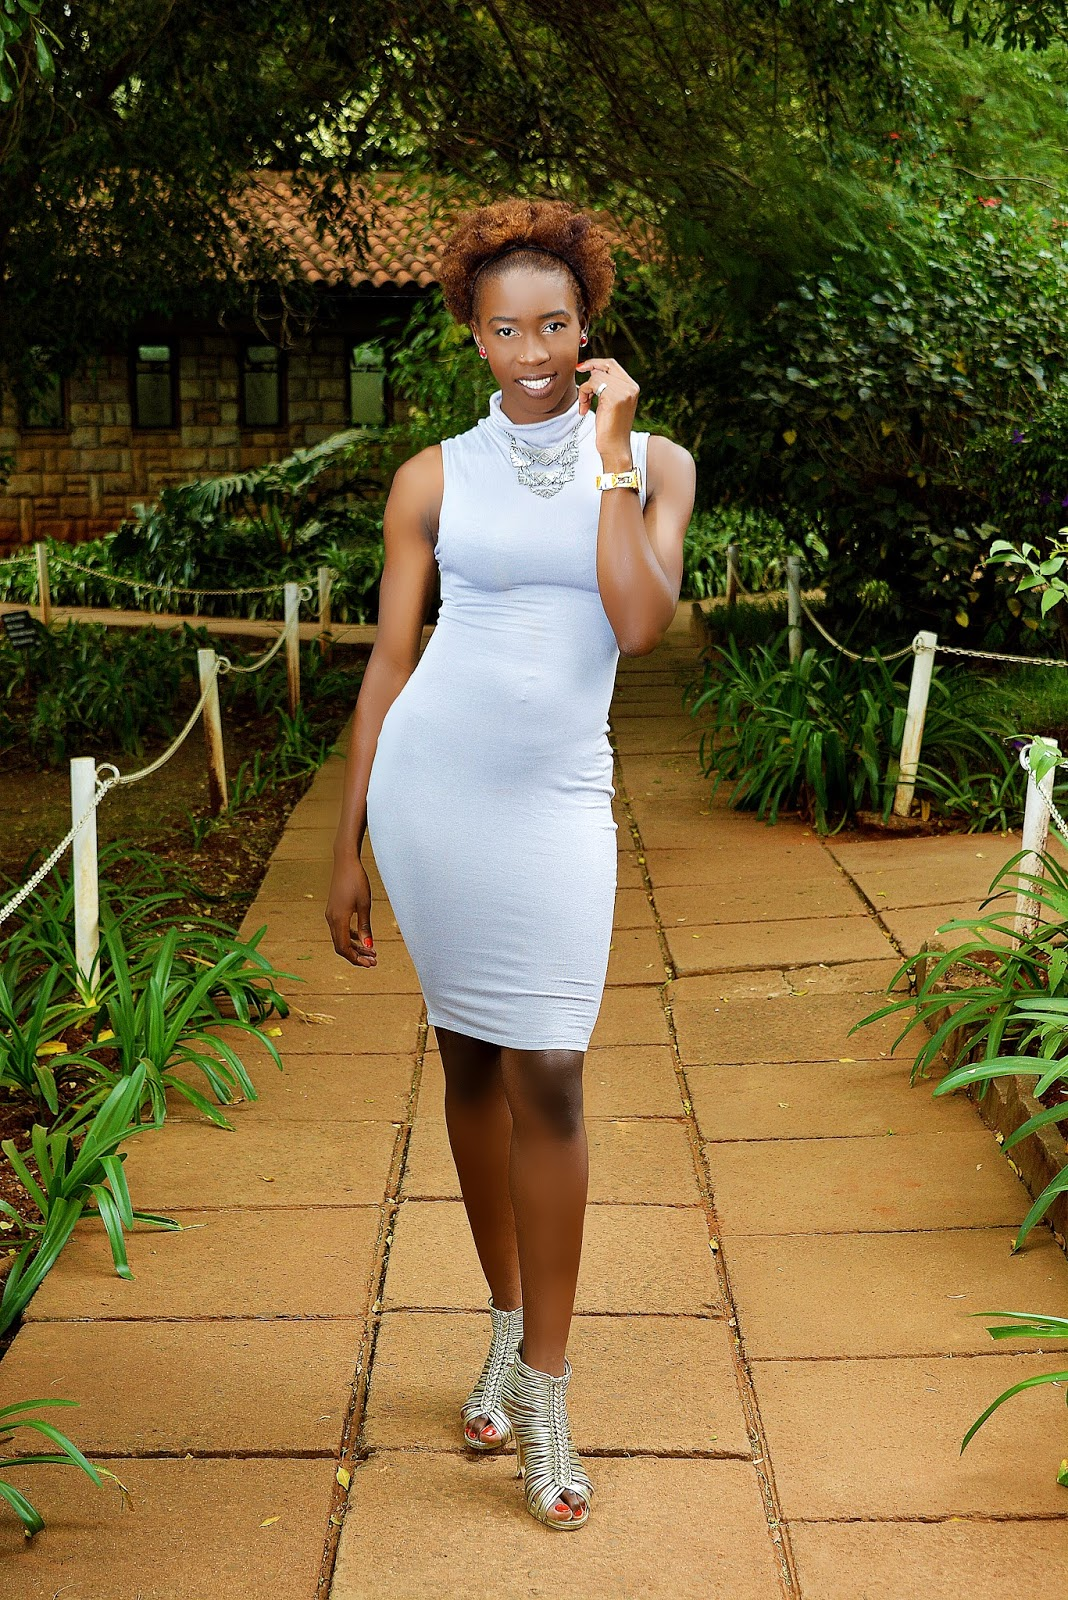 double slit top to bodycon dress, high neck bodycon dress, date outfit ideas, what to wear Kenya, top Kenyan fashion blog, style with Ezil, Ezil, natural hair date look, type 4b hairstyle, wardrobe staples, gray dress